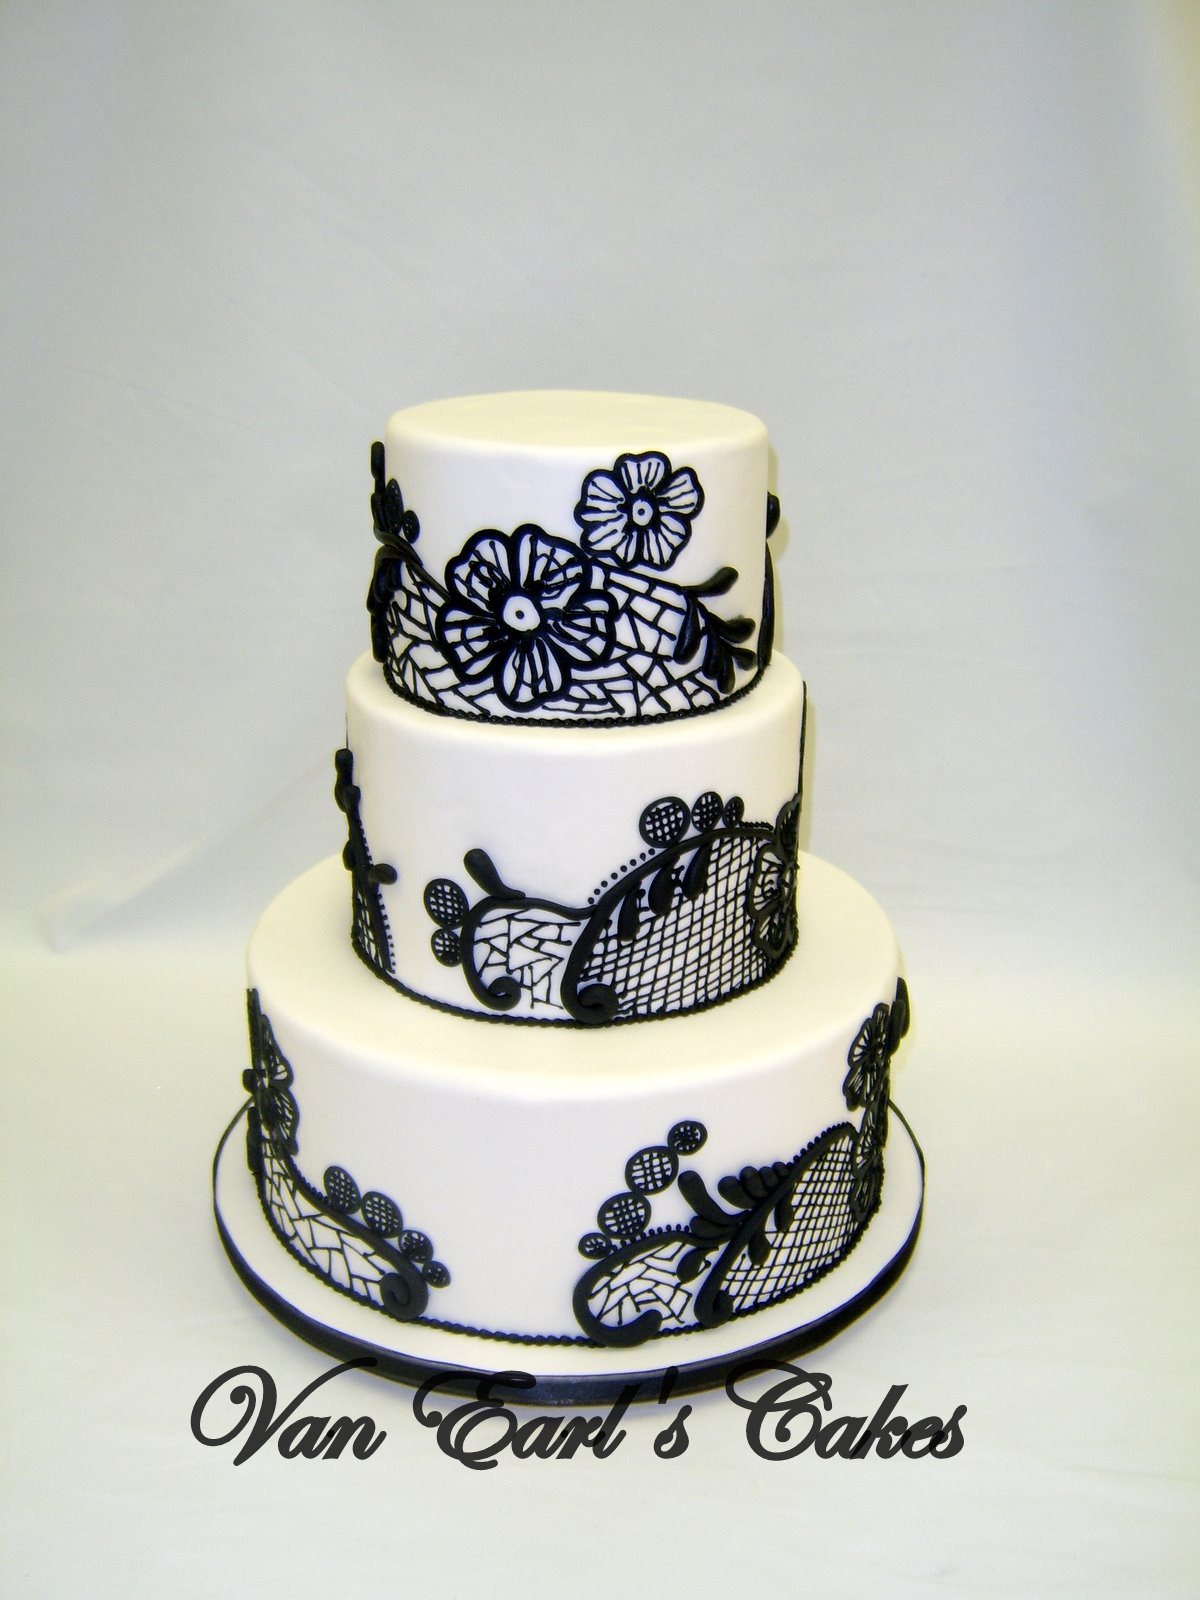 Van Earl s Cakes Black & White Lace Wedding Cake